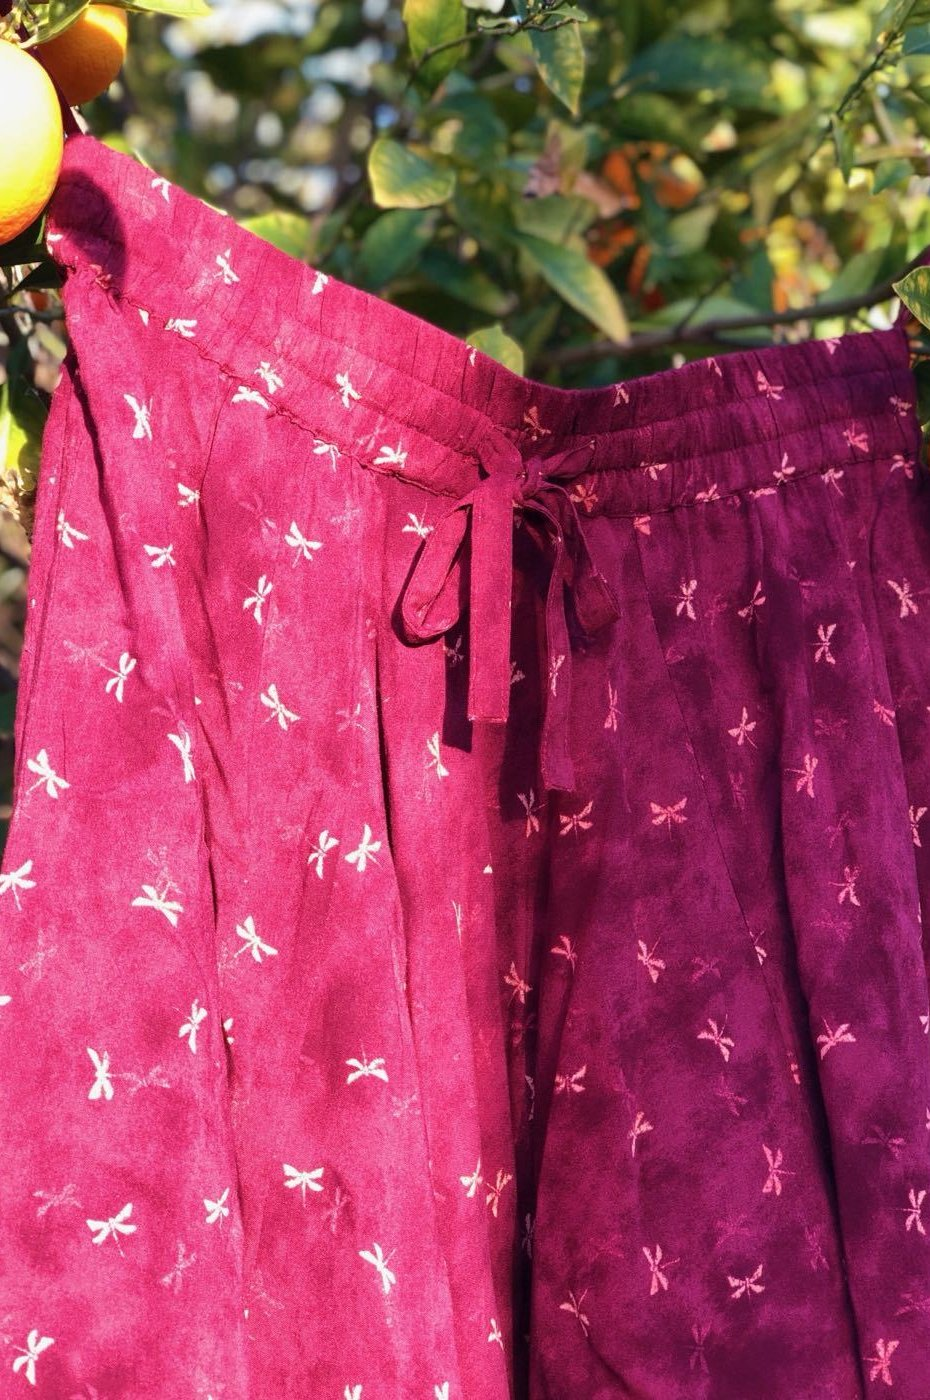 Cardinal Dragonflies Harem Pants Ankle Length-Soulfree Yoga